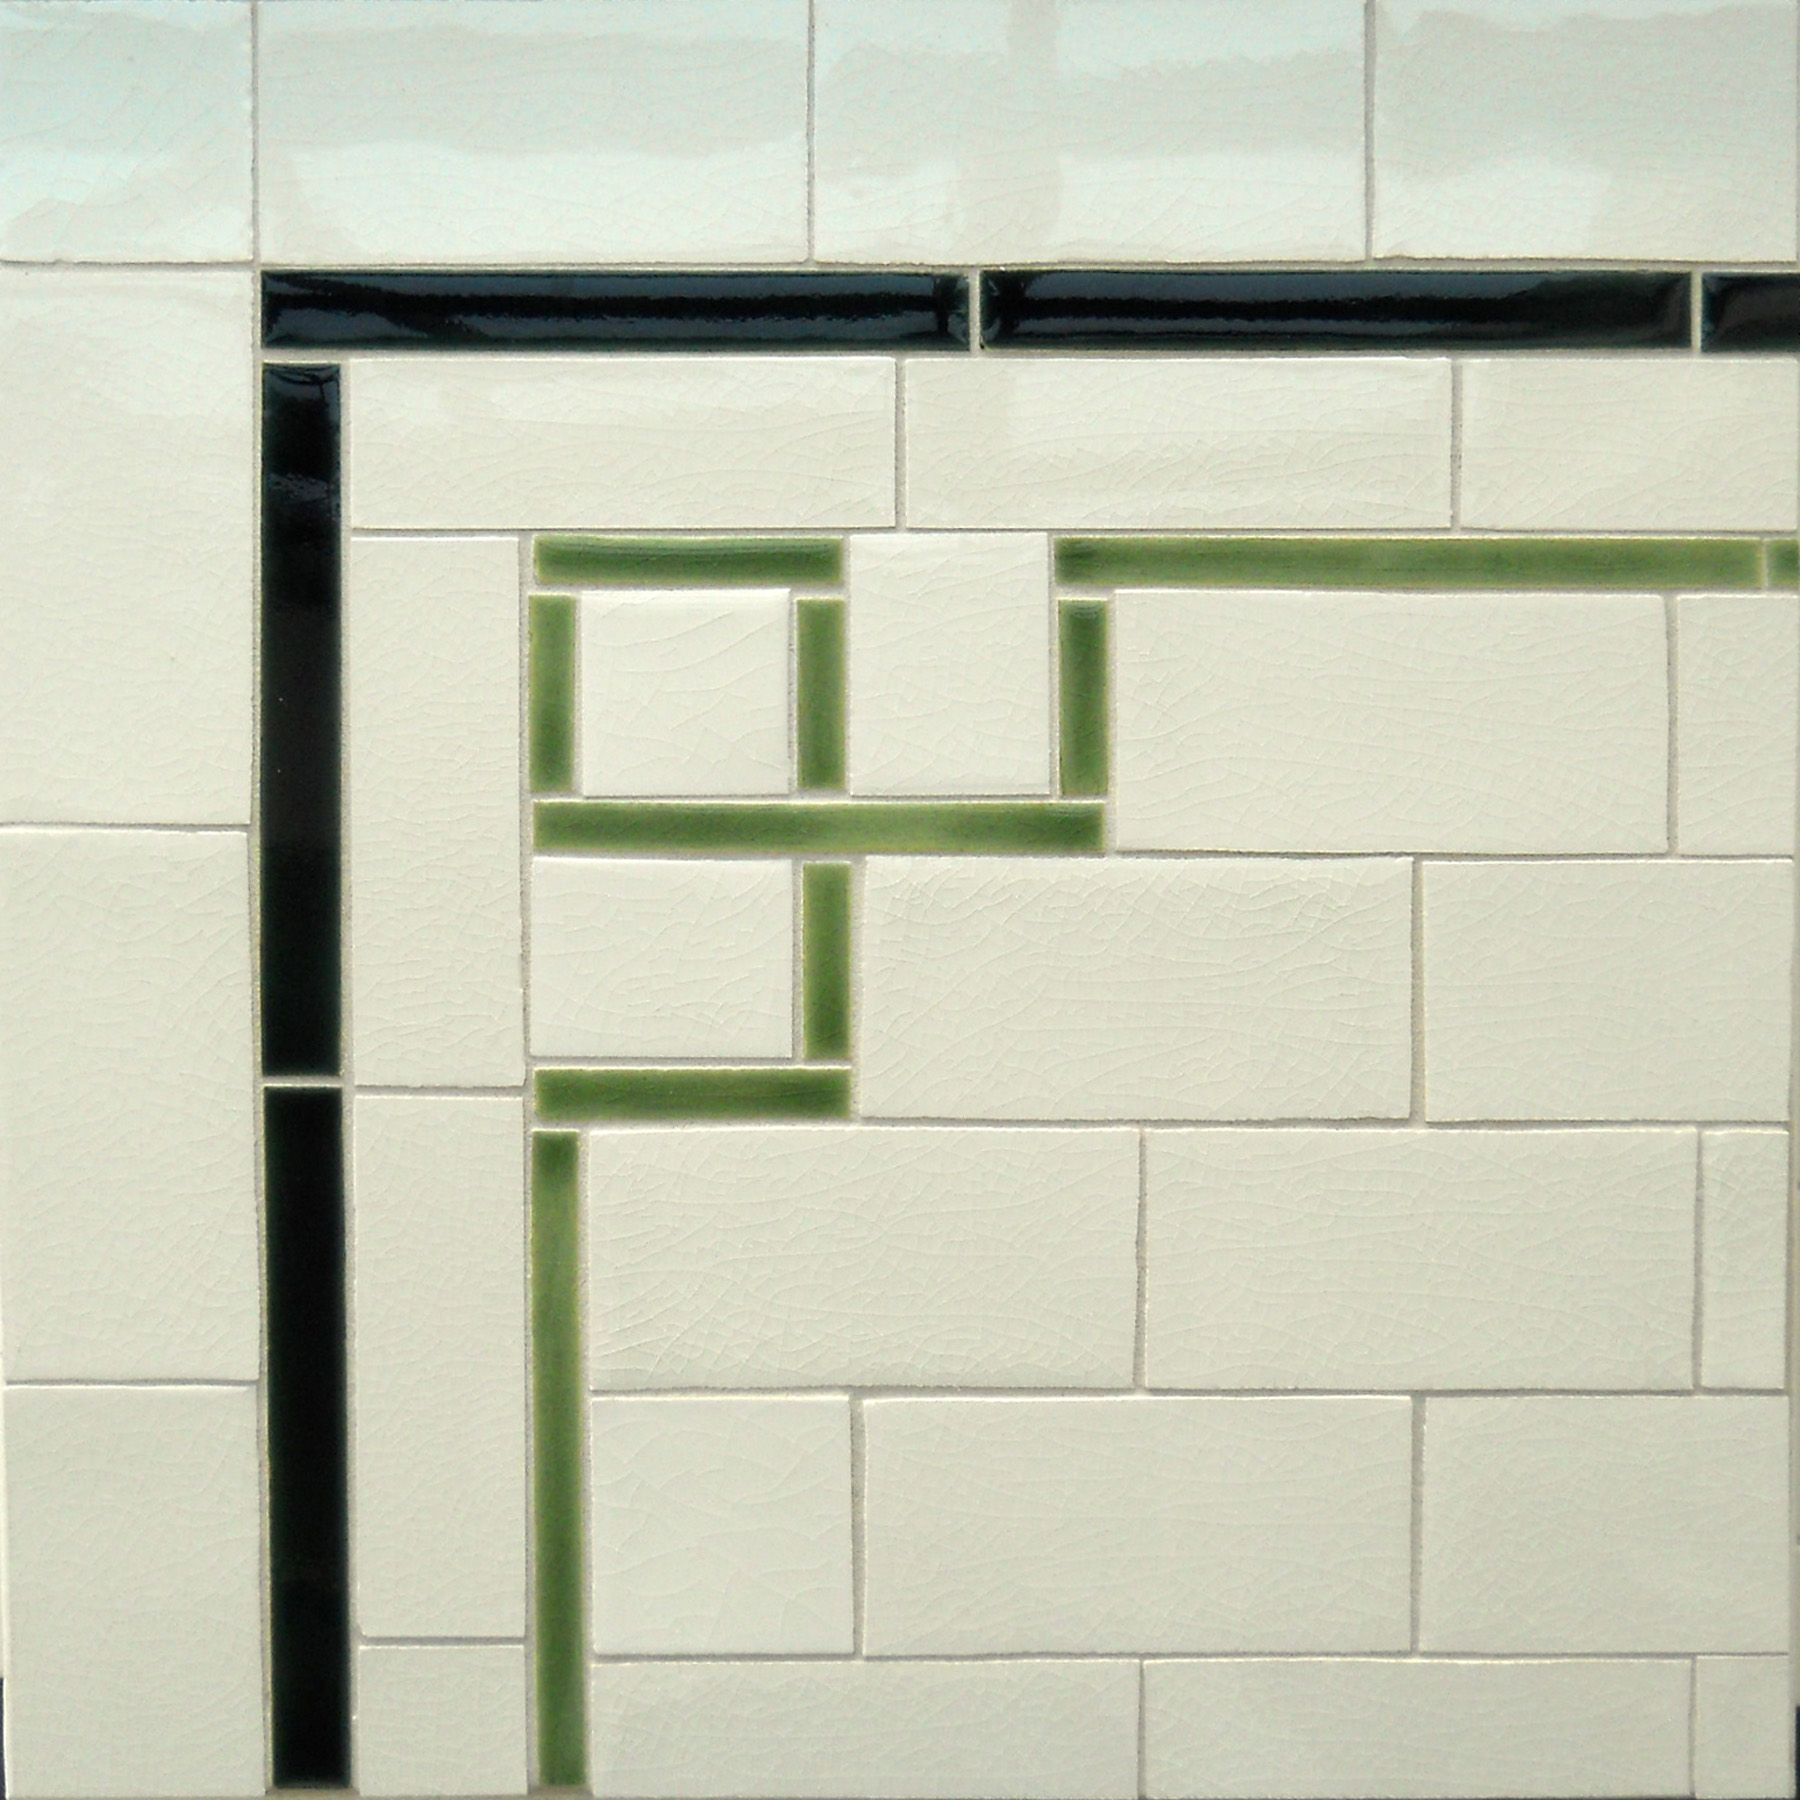 add a fancy corner detail to dress up your subway tile, Hause ideen